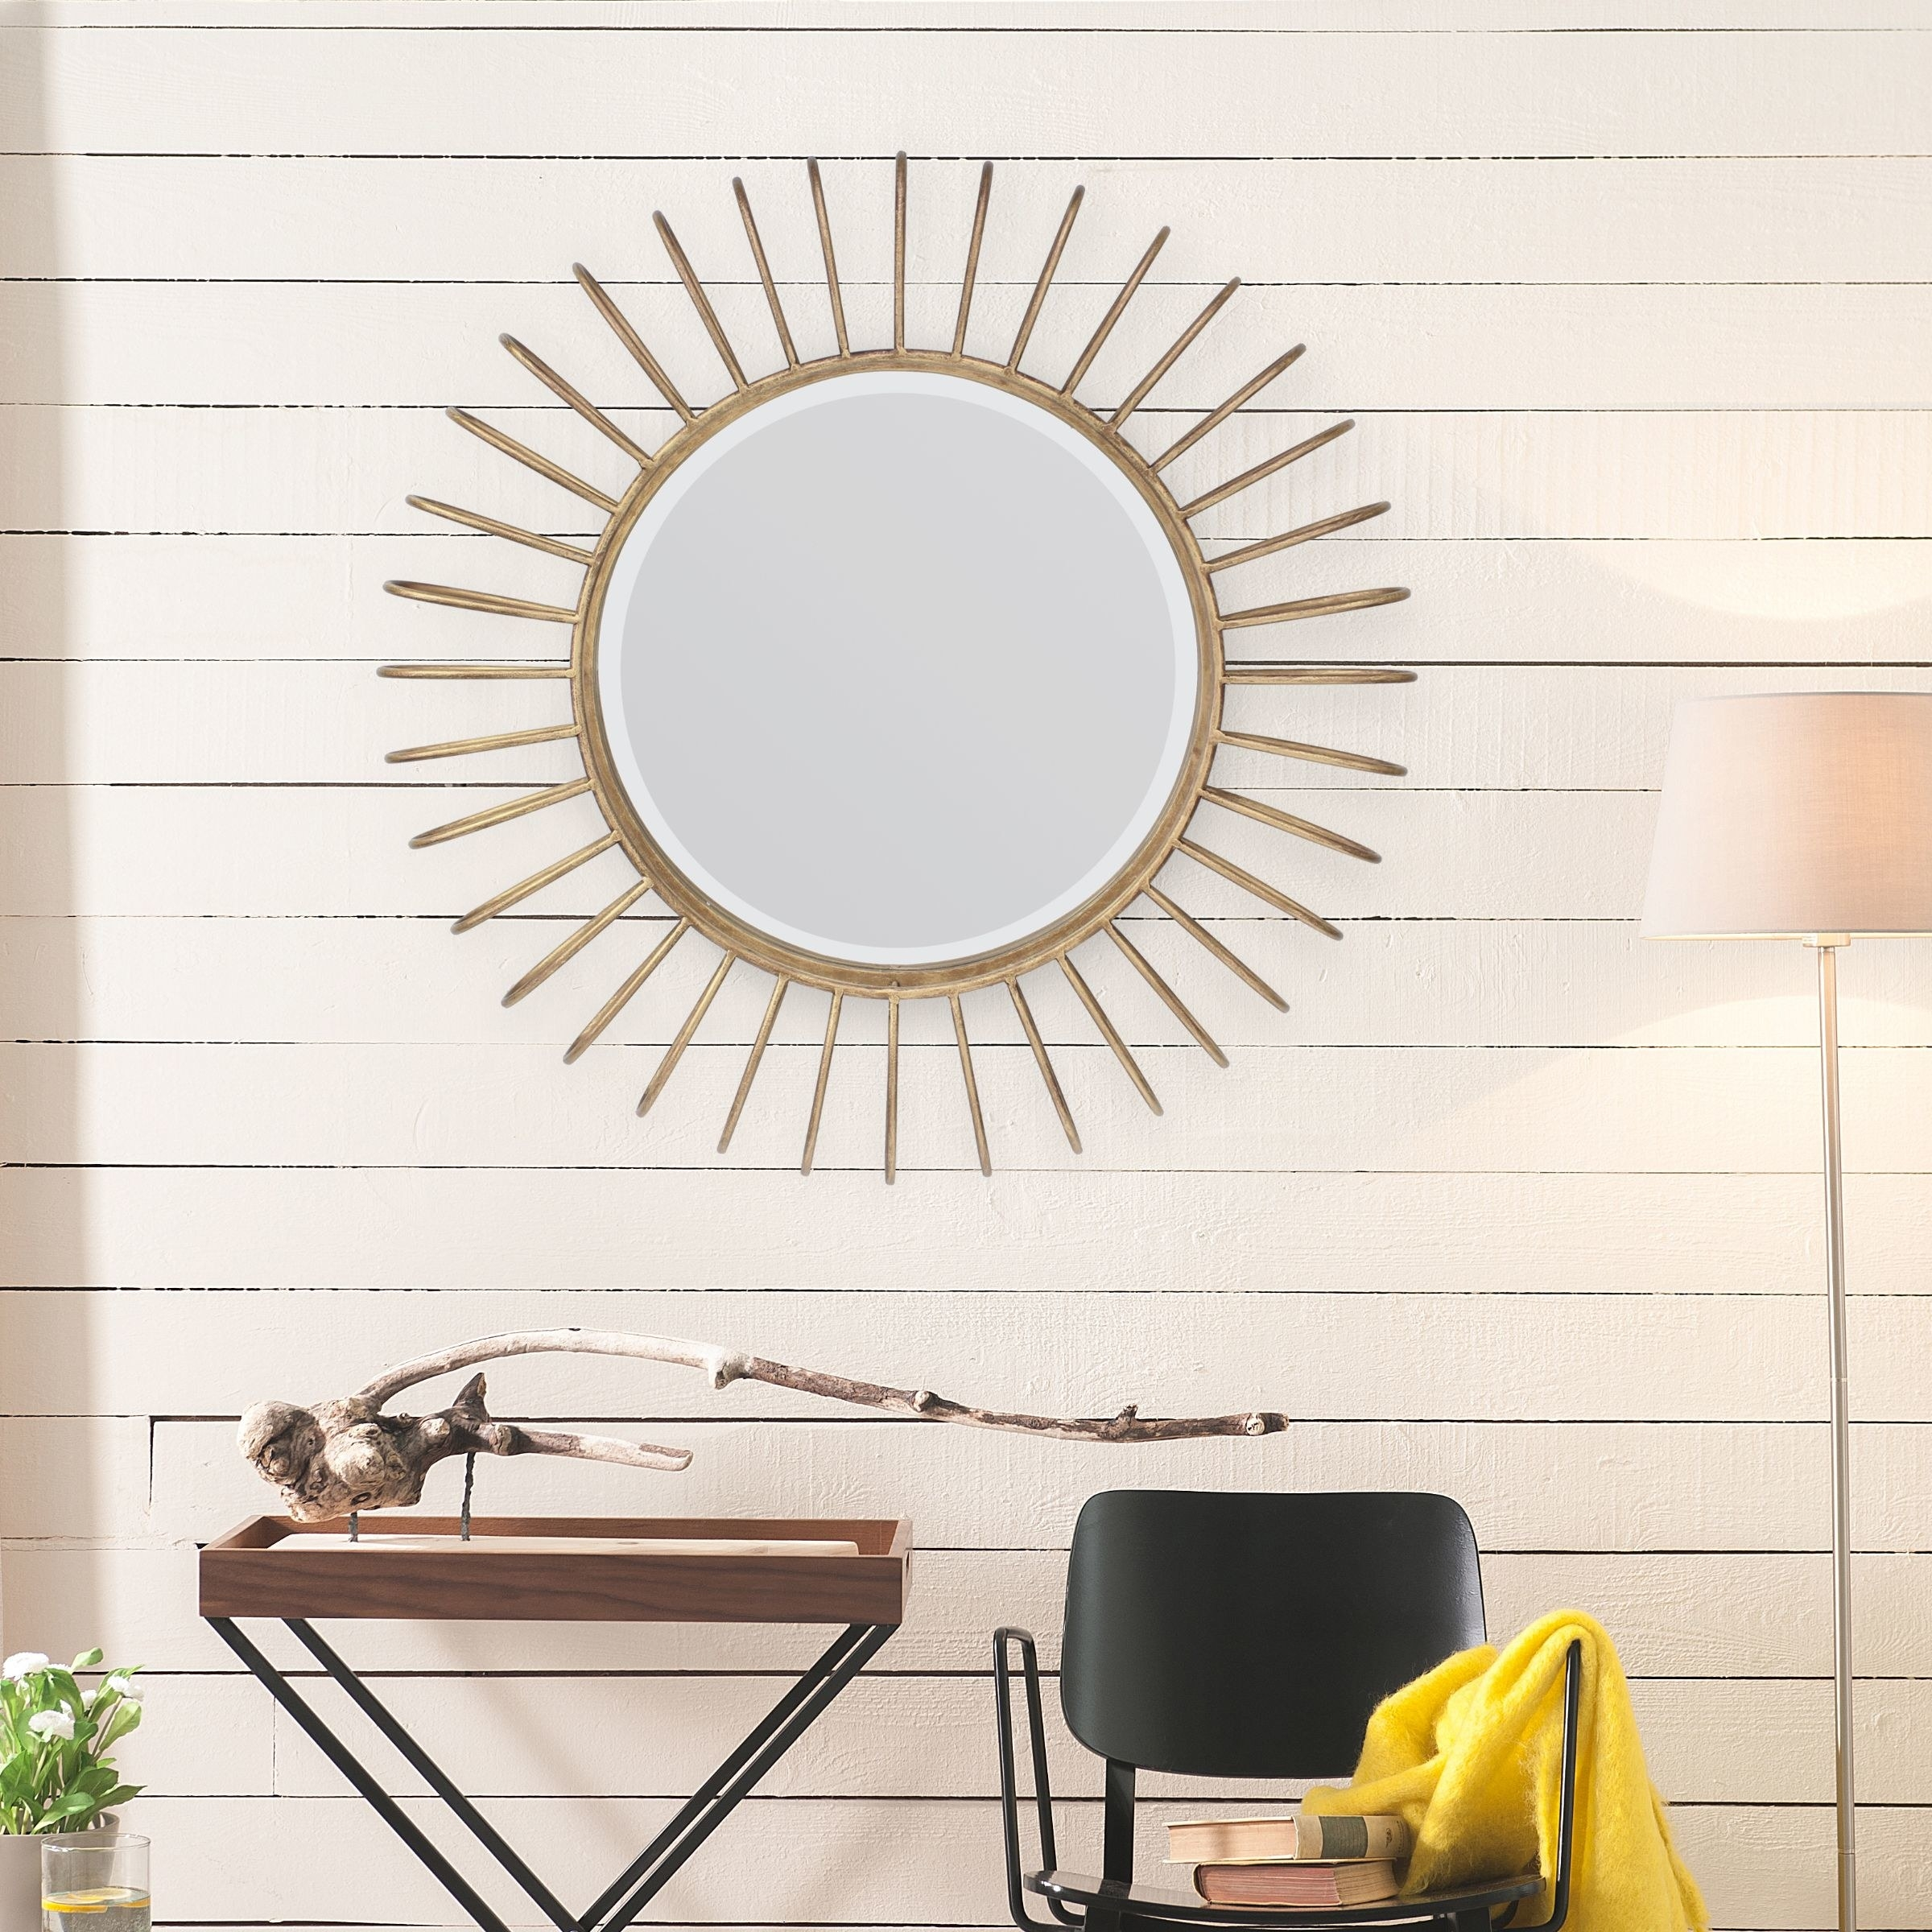 The wall mirror